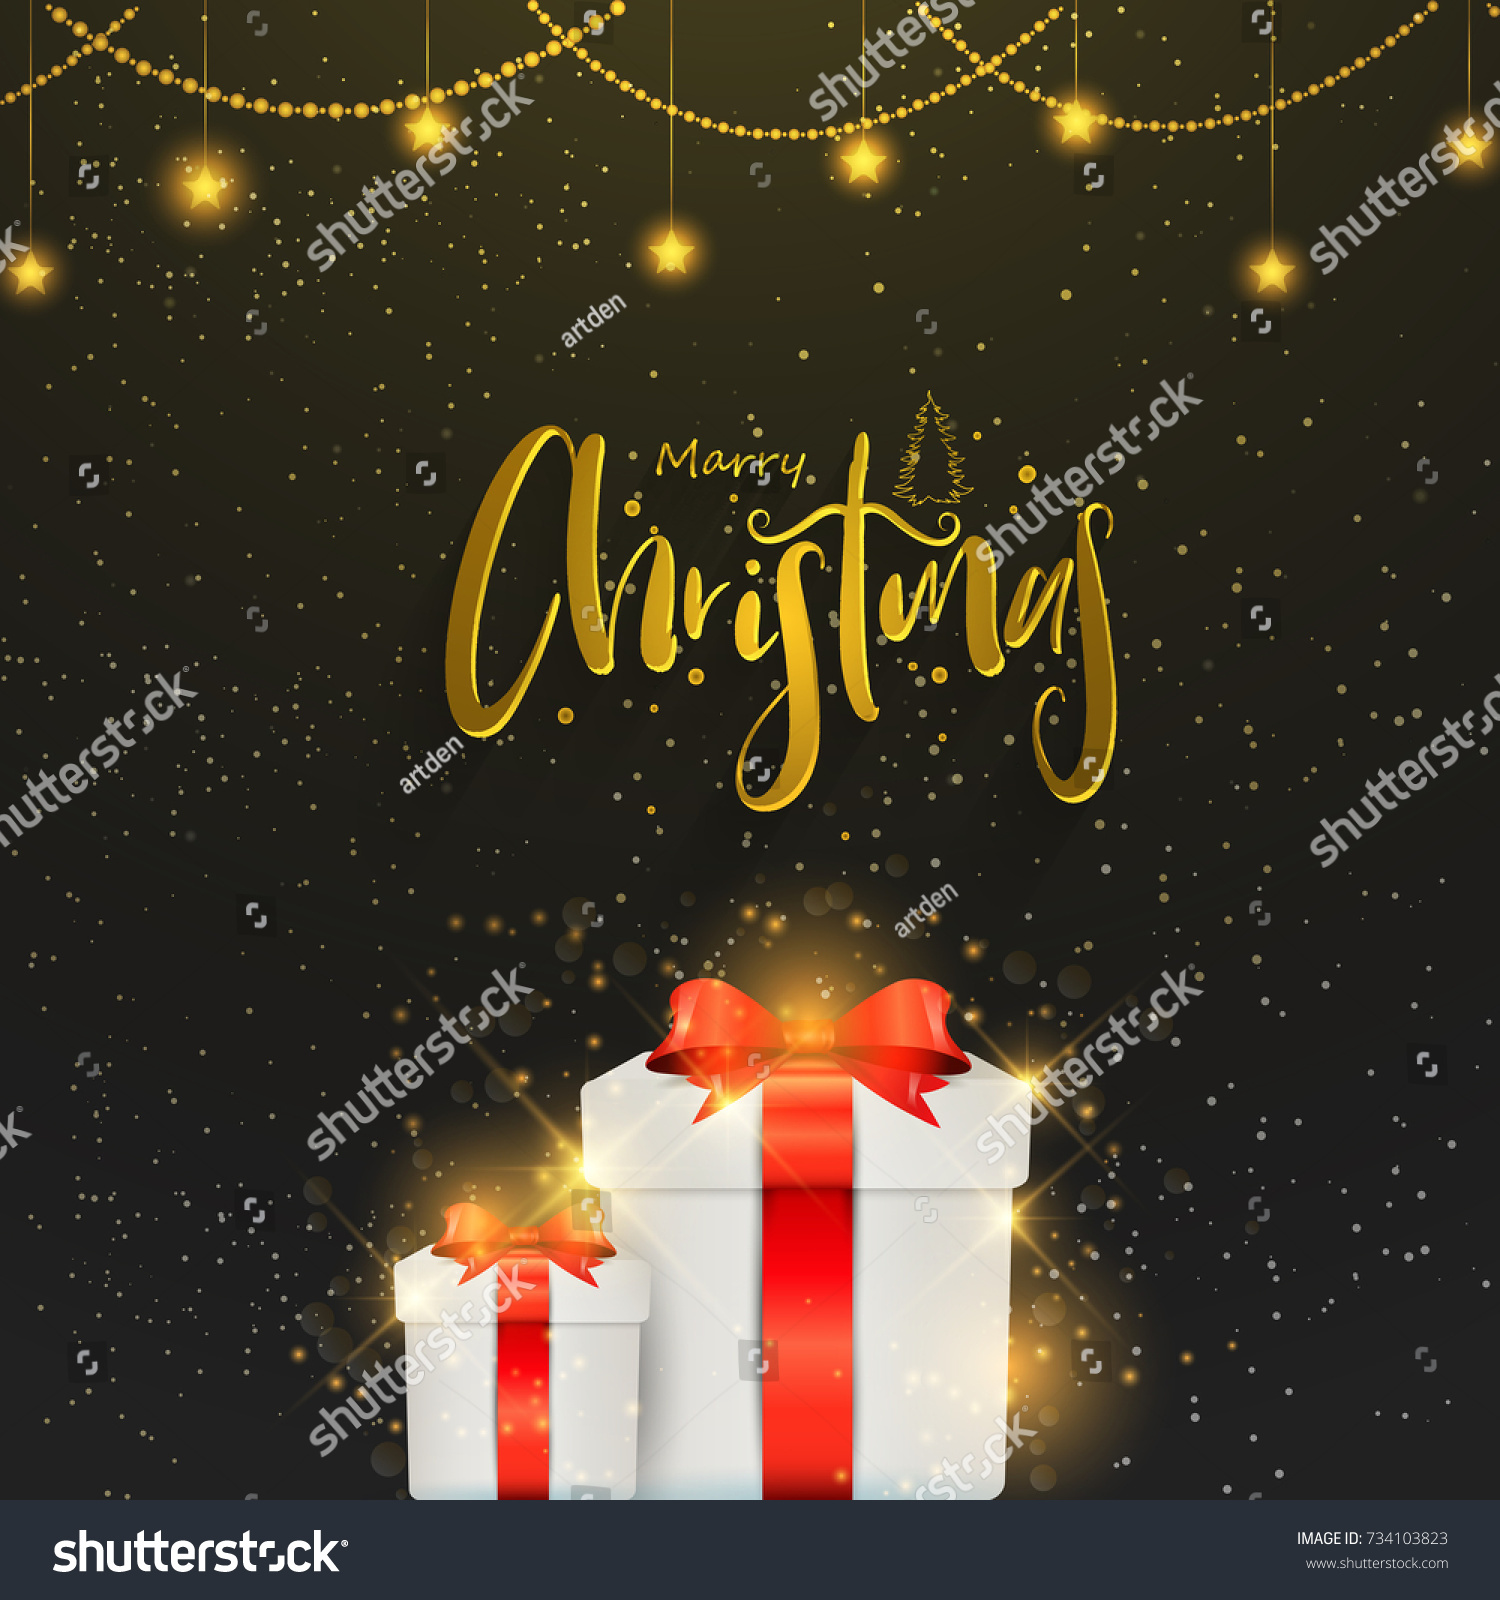 Nice beautiful abstract merry christmas nice stock vector nice and beautiful abstract for merry christmas with nice and creative design illustration in background kristyandbryce Gallery